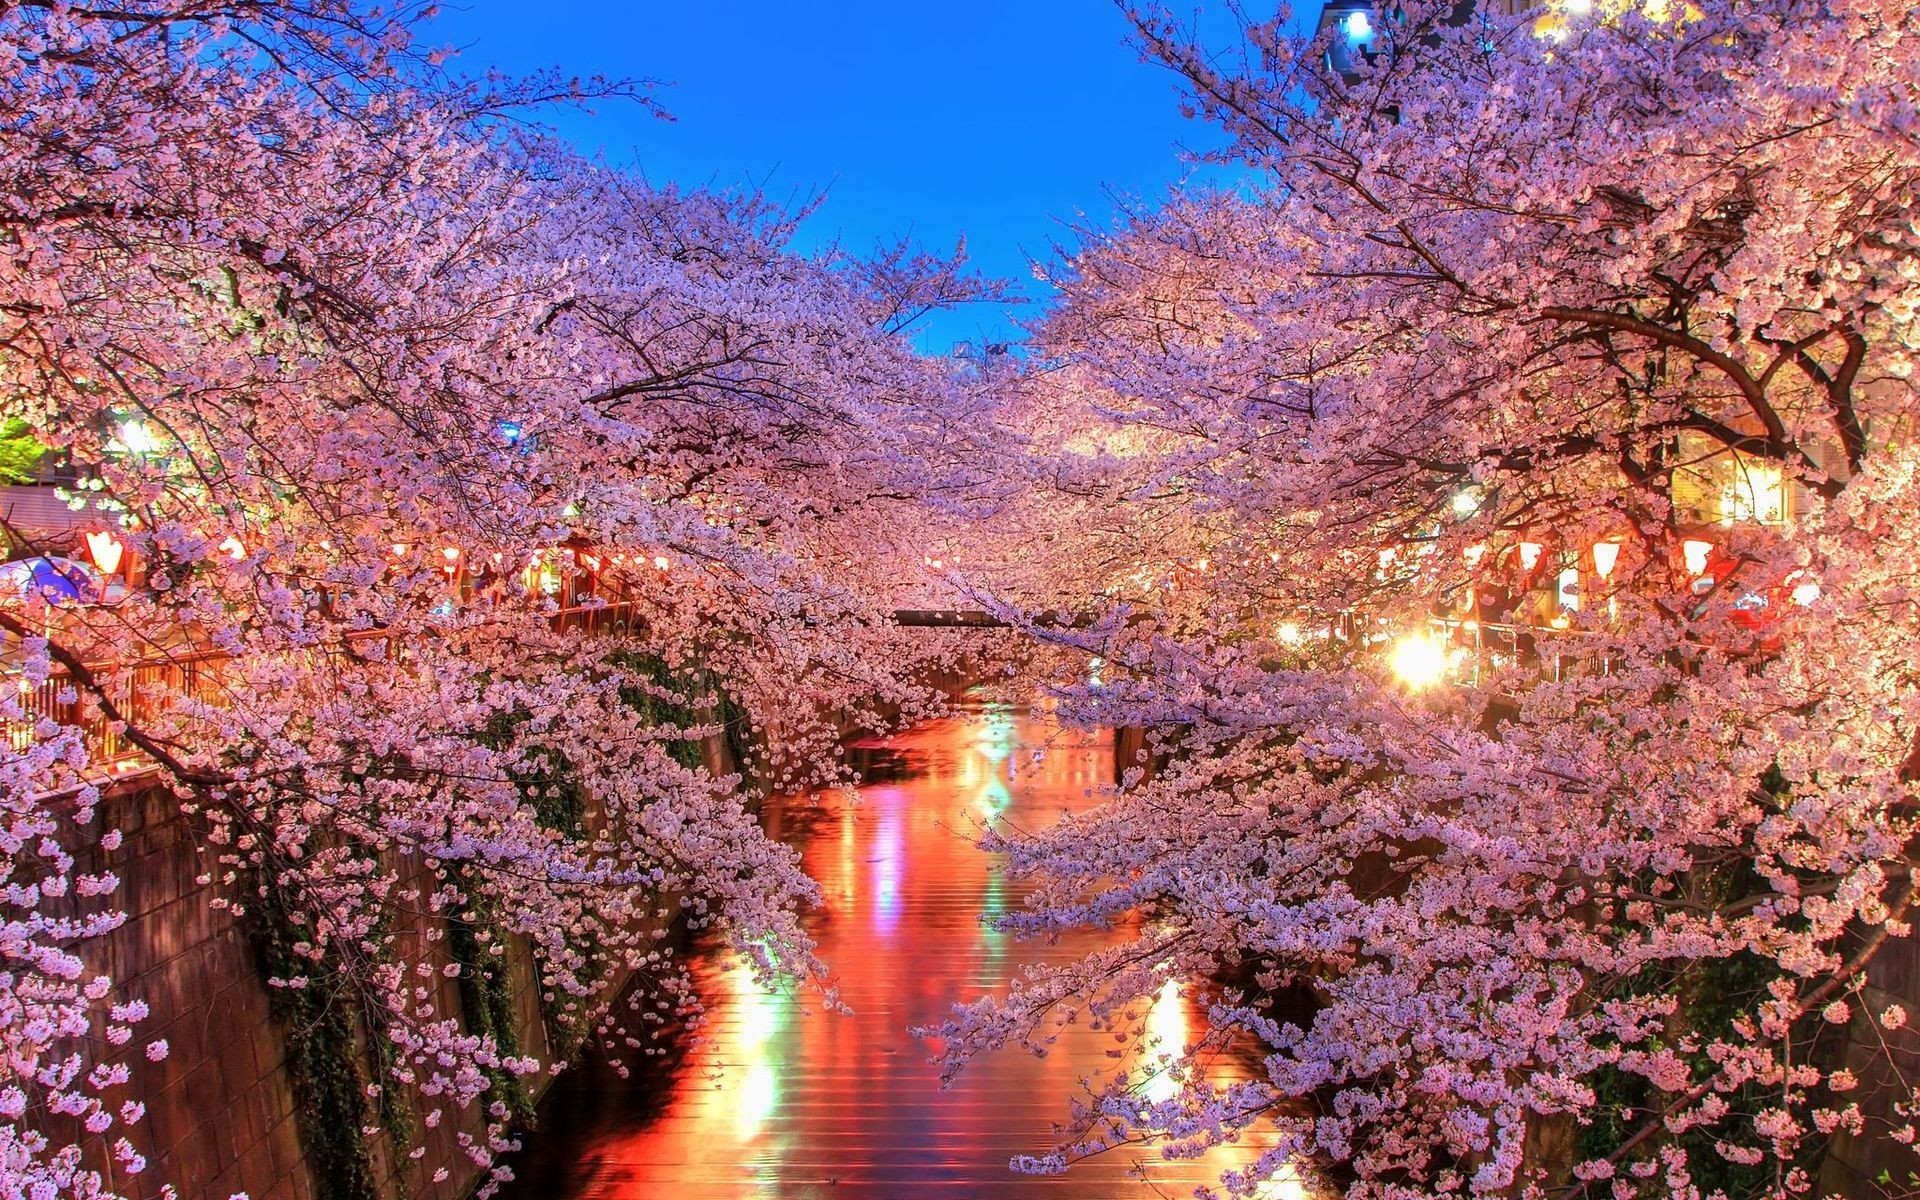 Wallpapers Cherry Blossom Wallpaper Trees Landscape Lights Flowers Water Plants